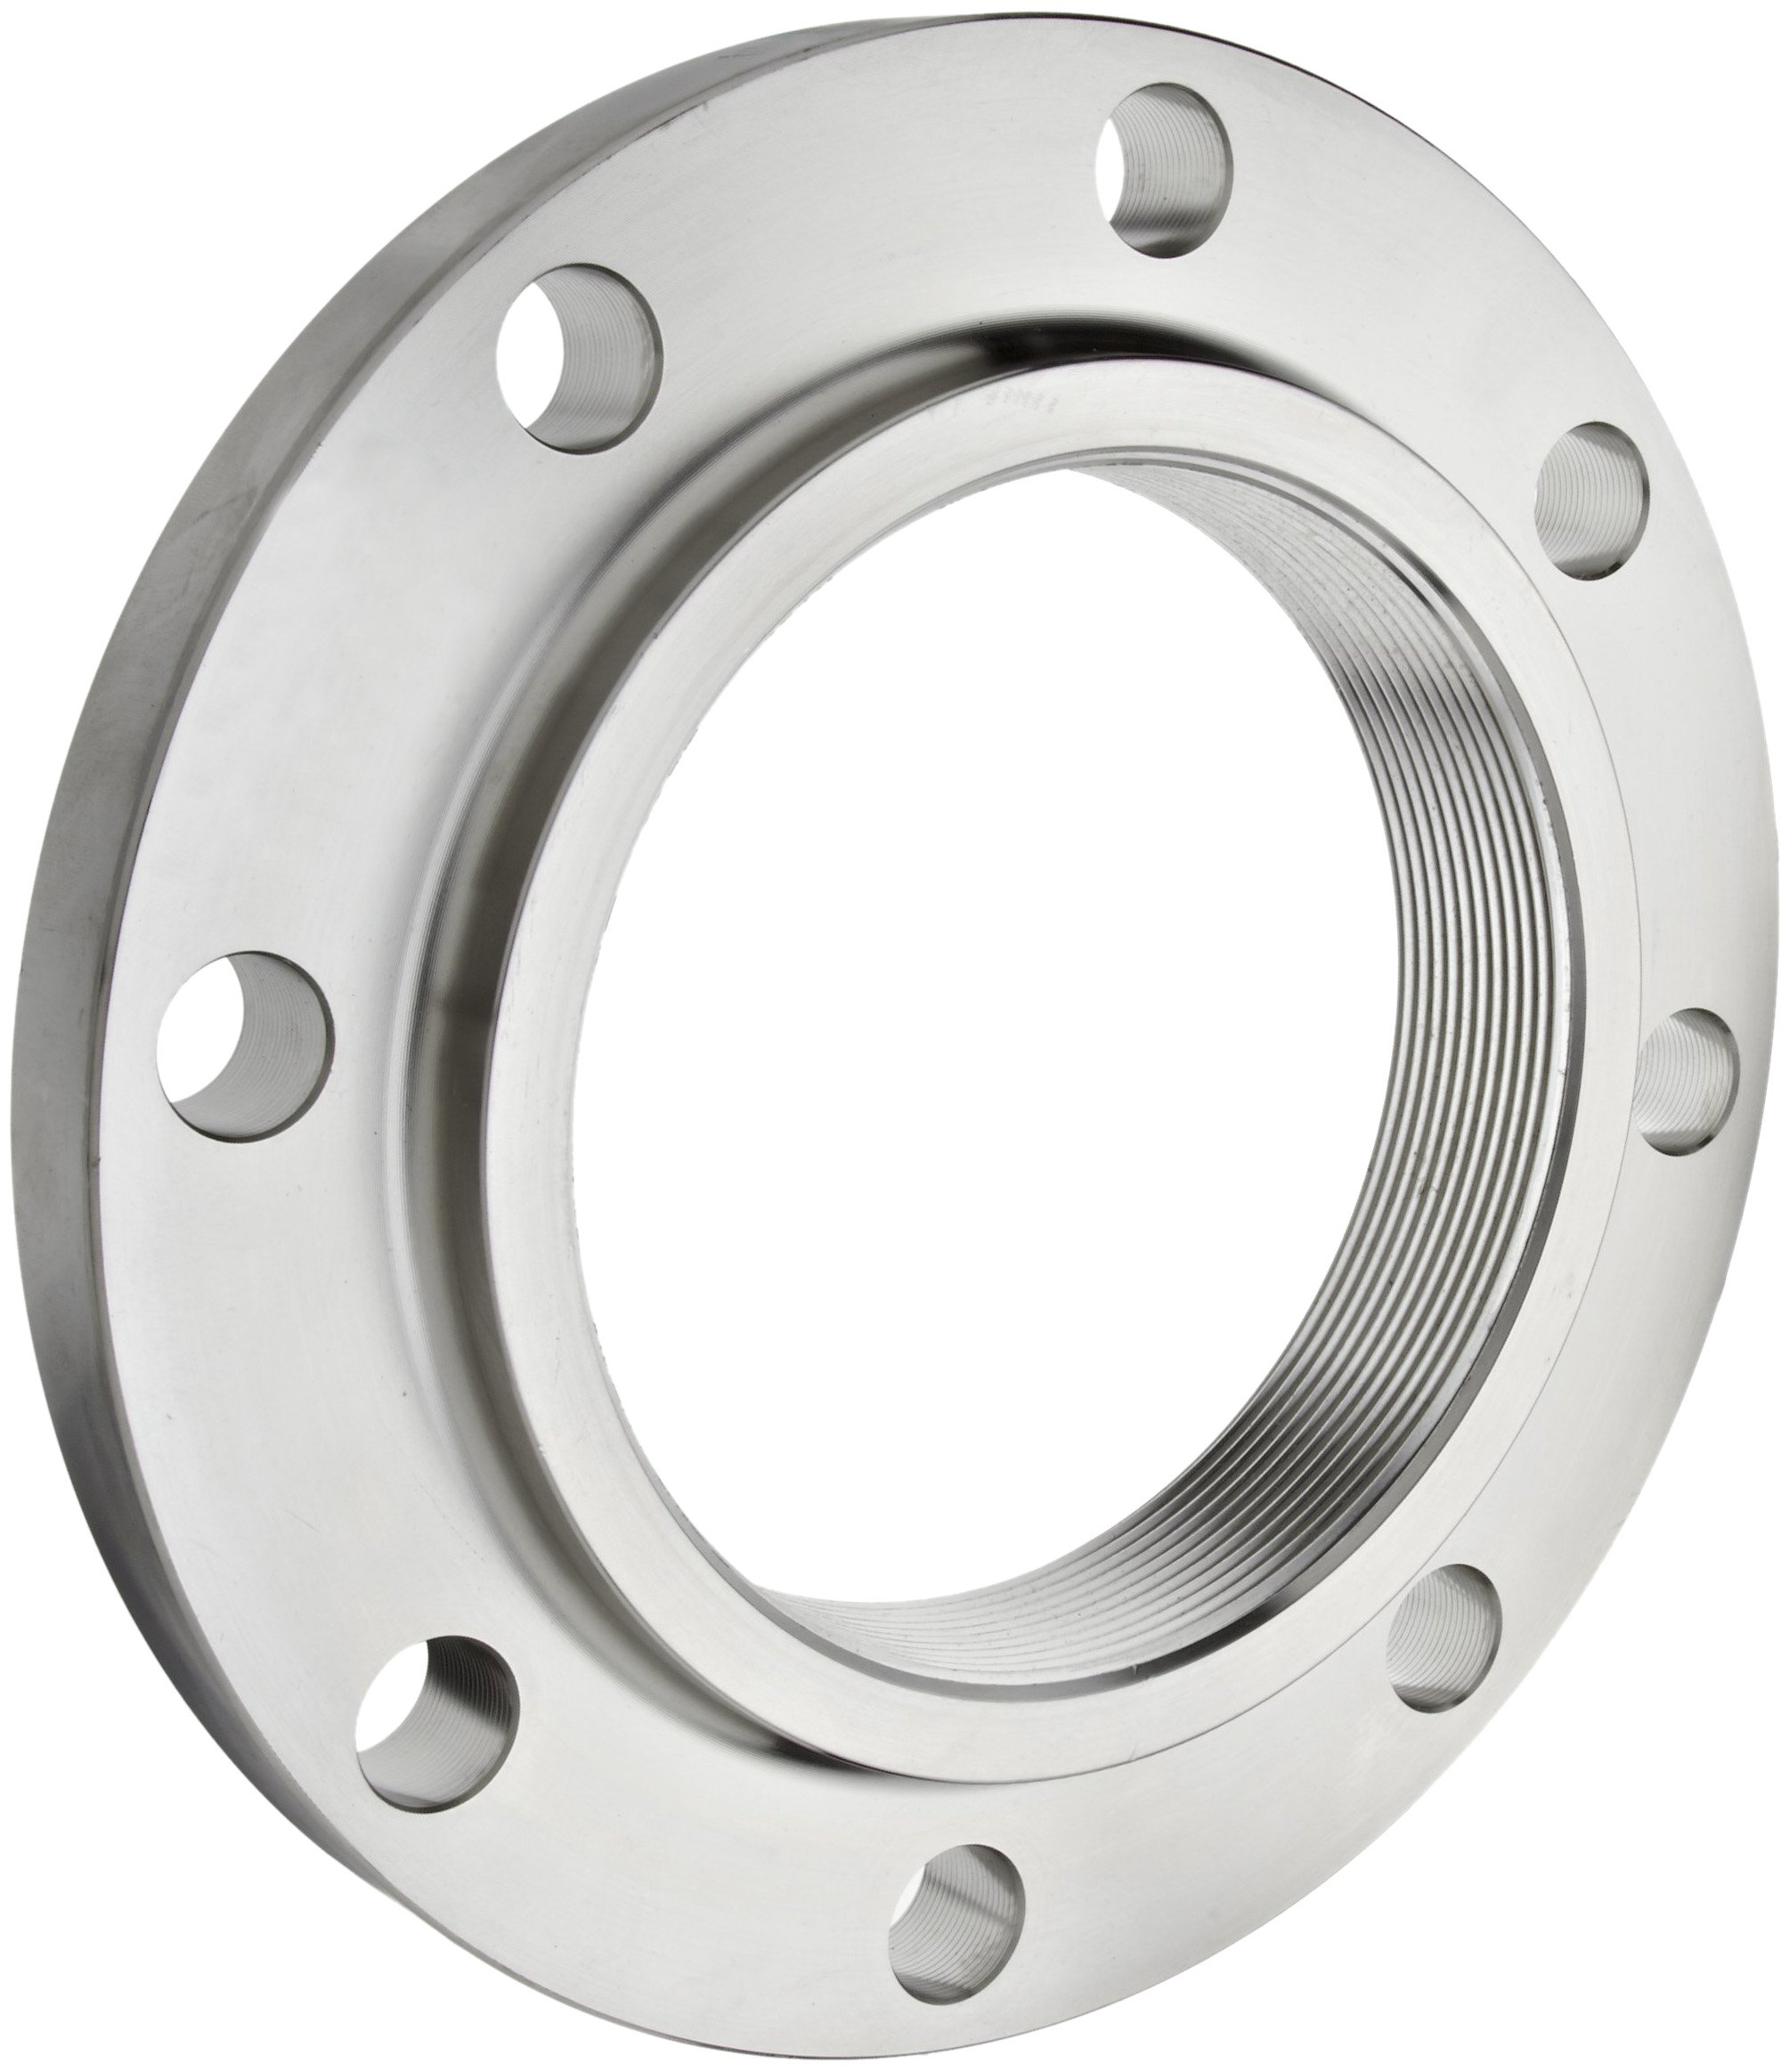 Stainless Steel 316/316L Pipe Fitting, Flange, Threaded, Class 150, 6'' NPT Female